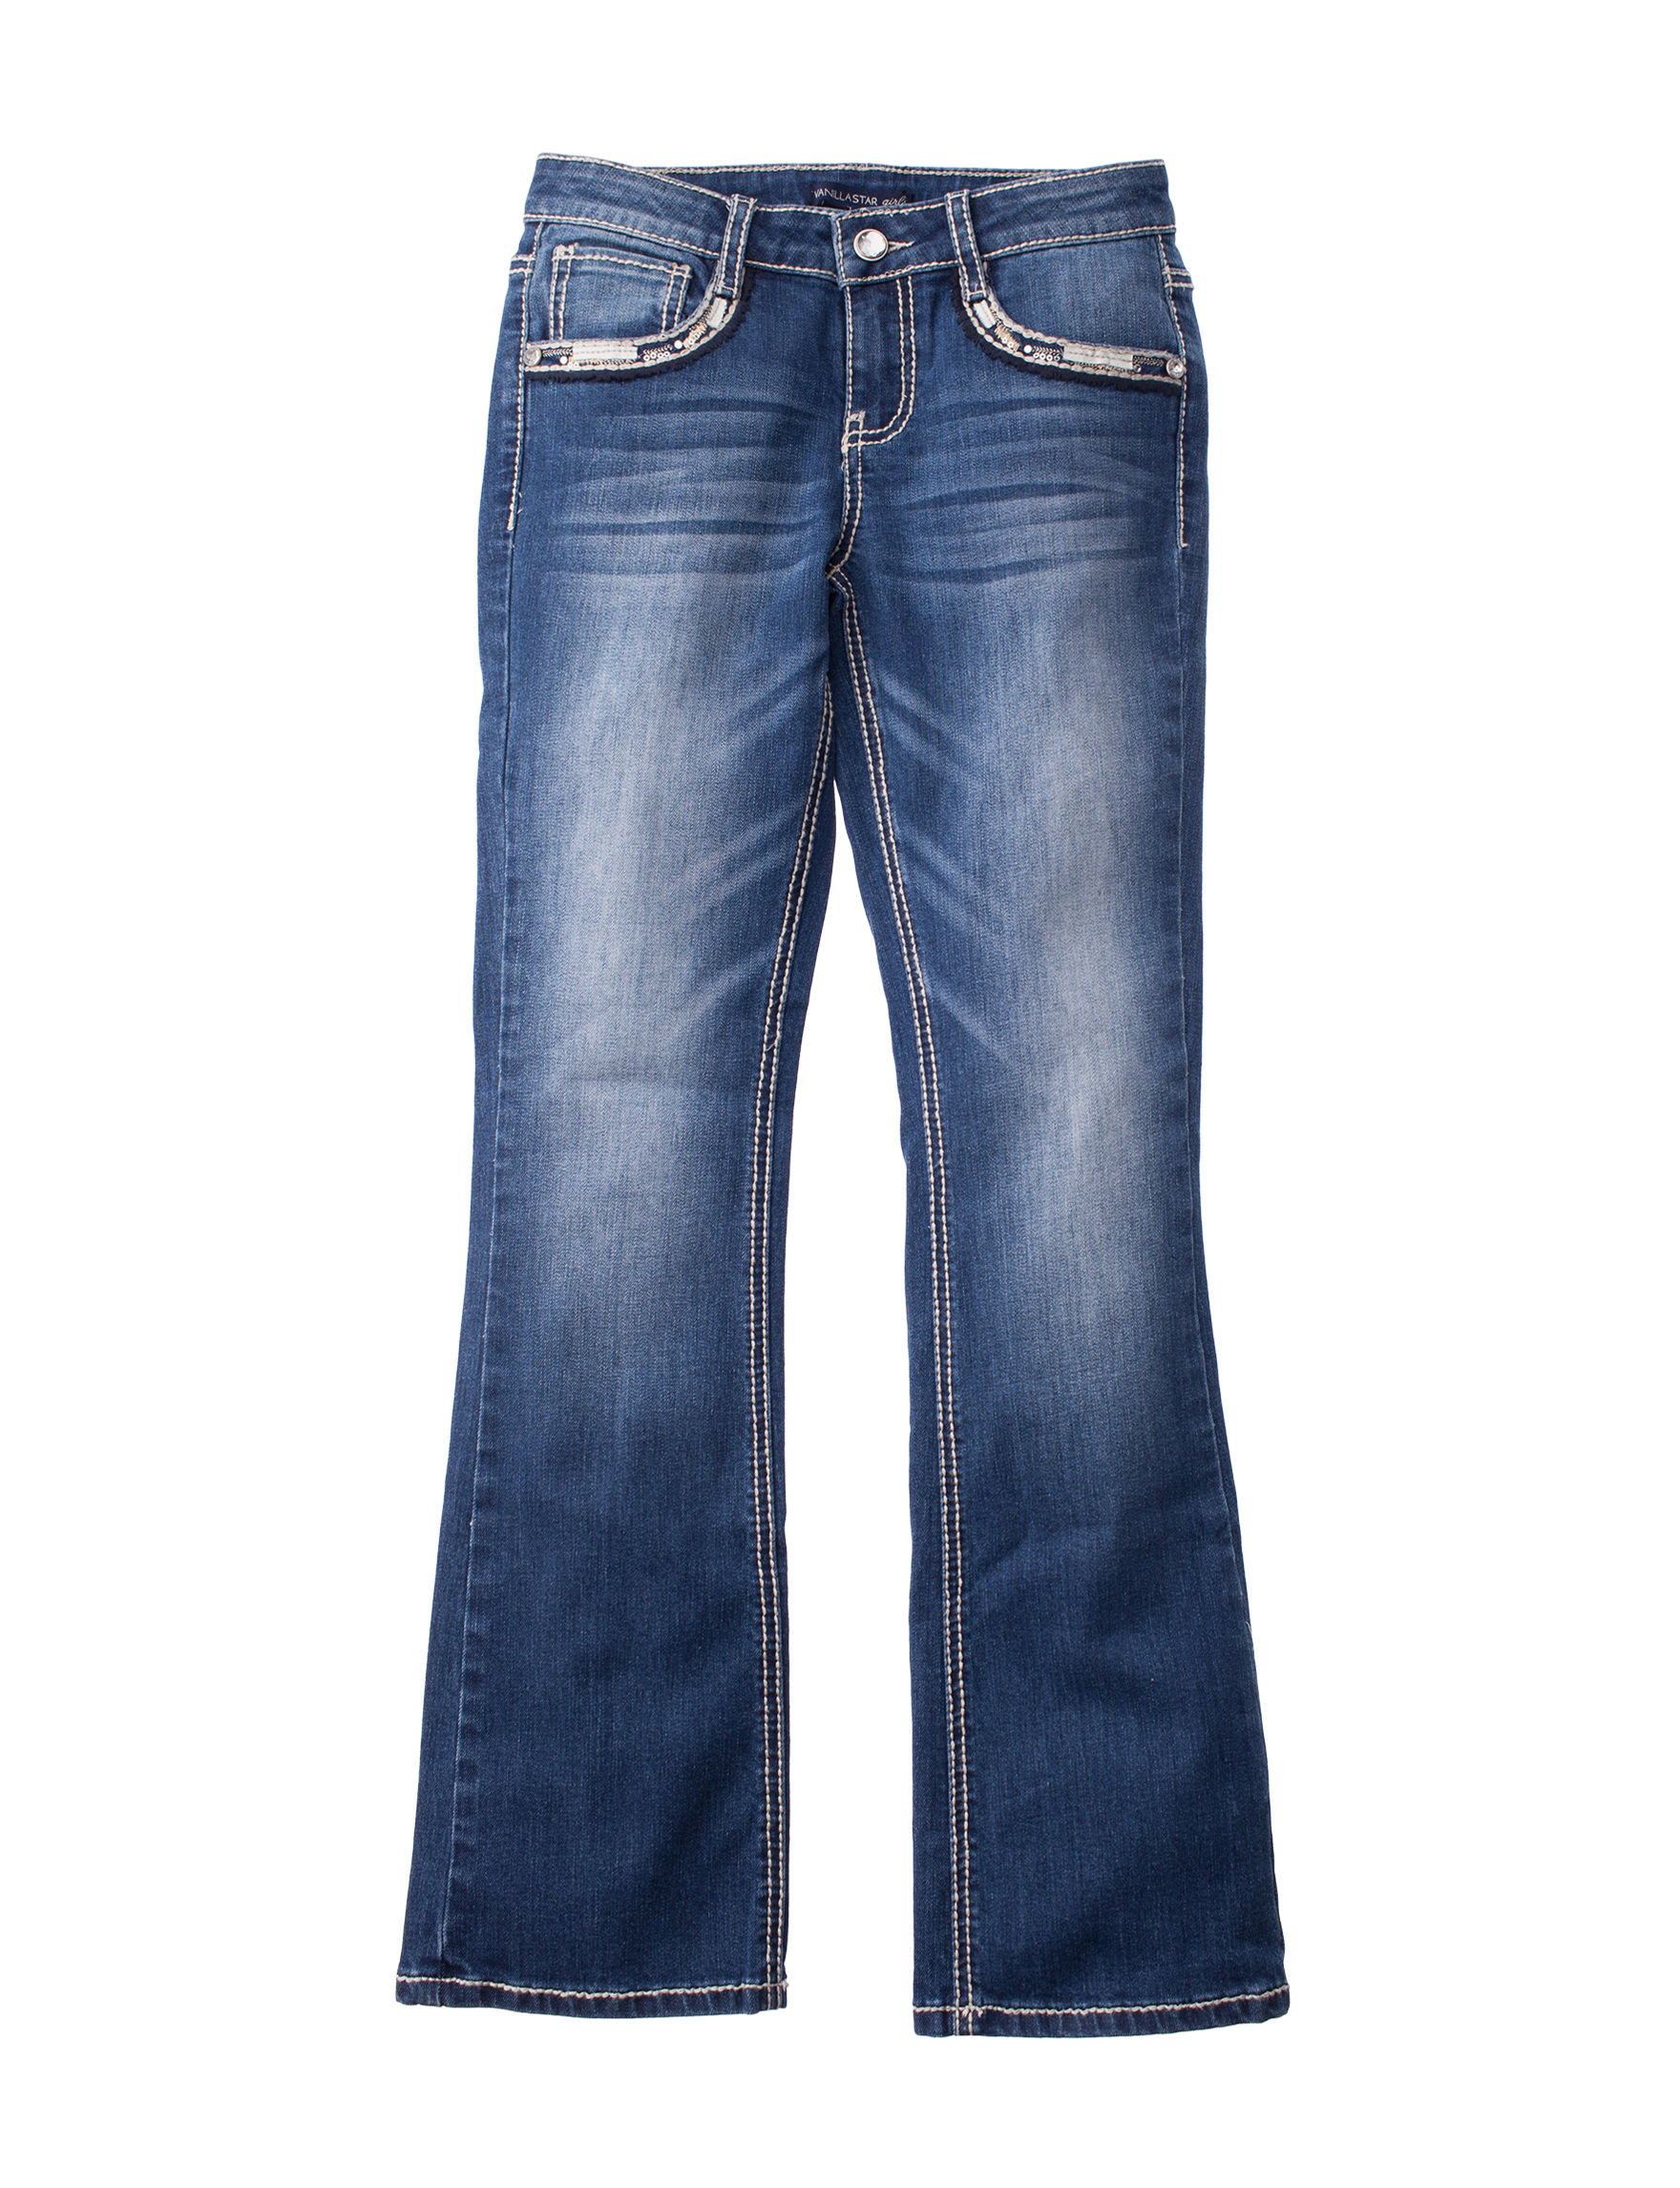 Vanilla Star Dark Wash Bootcut